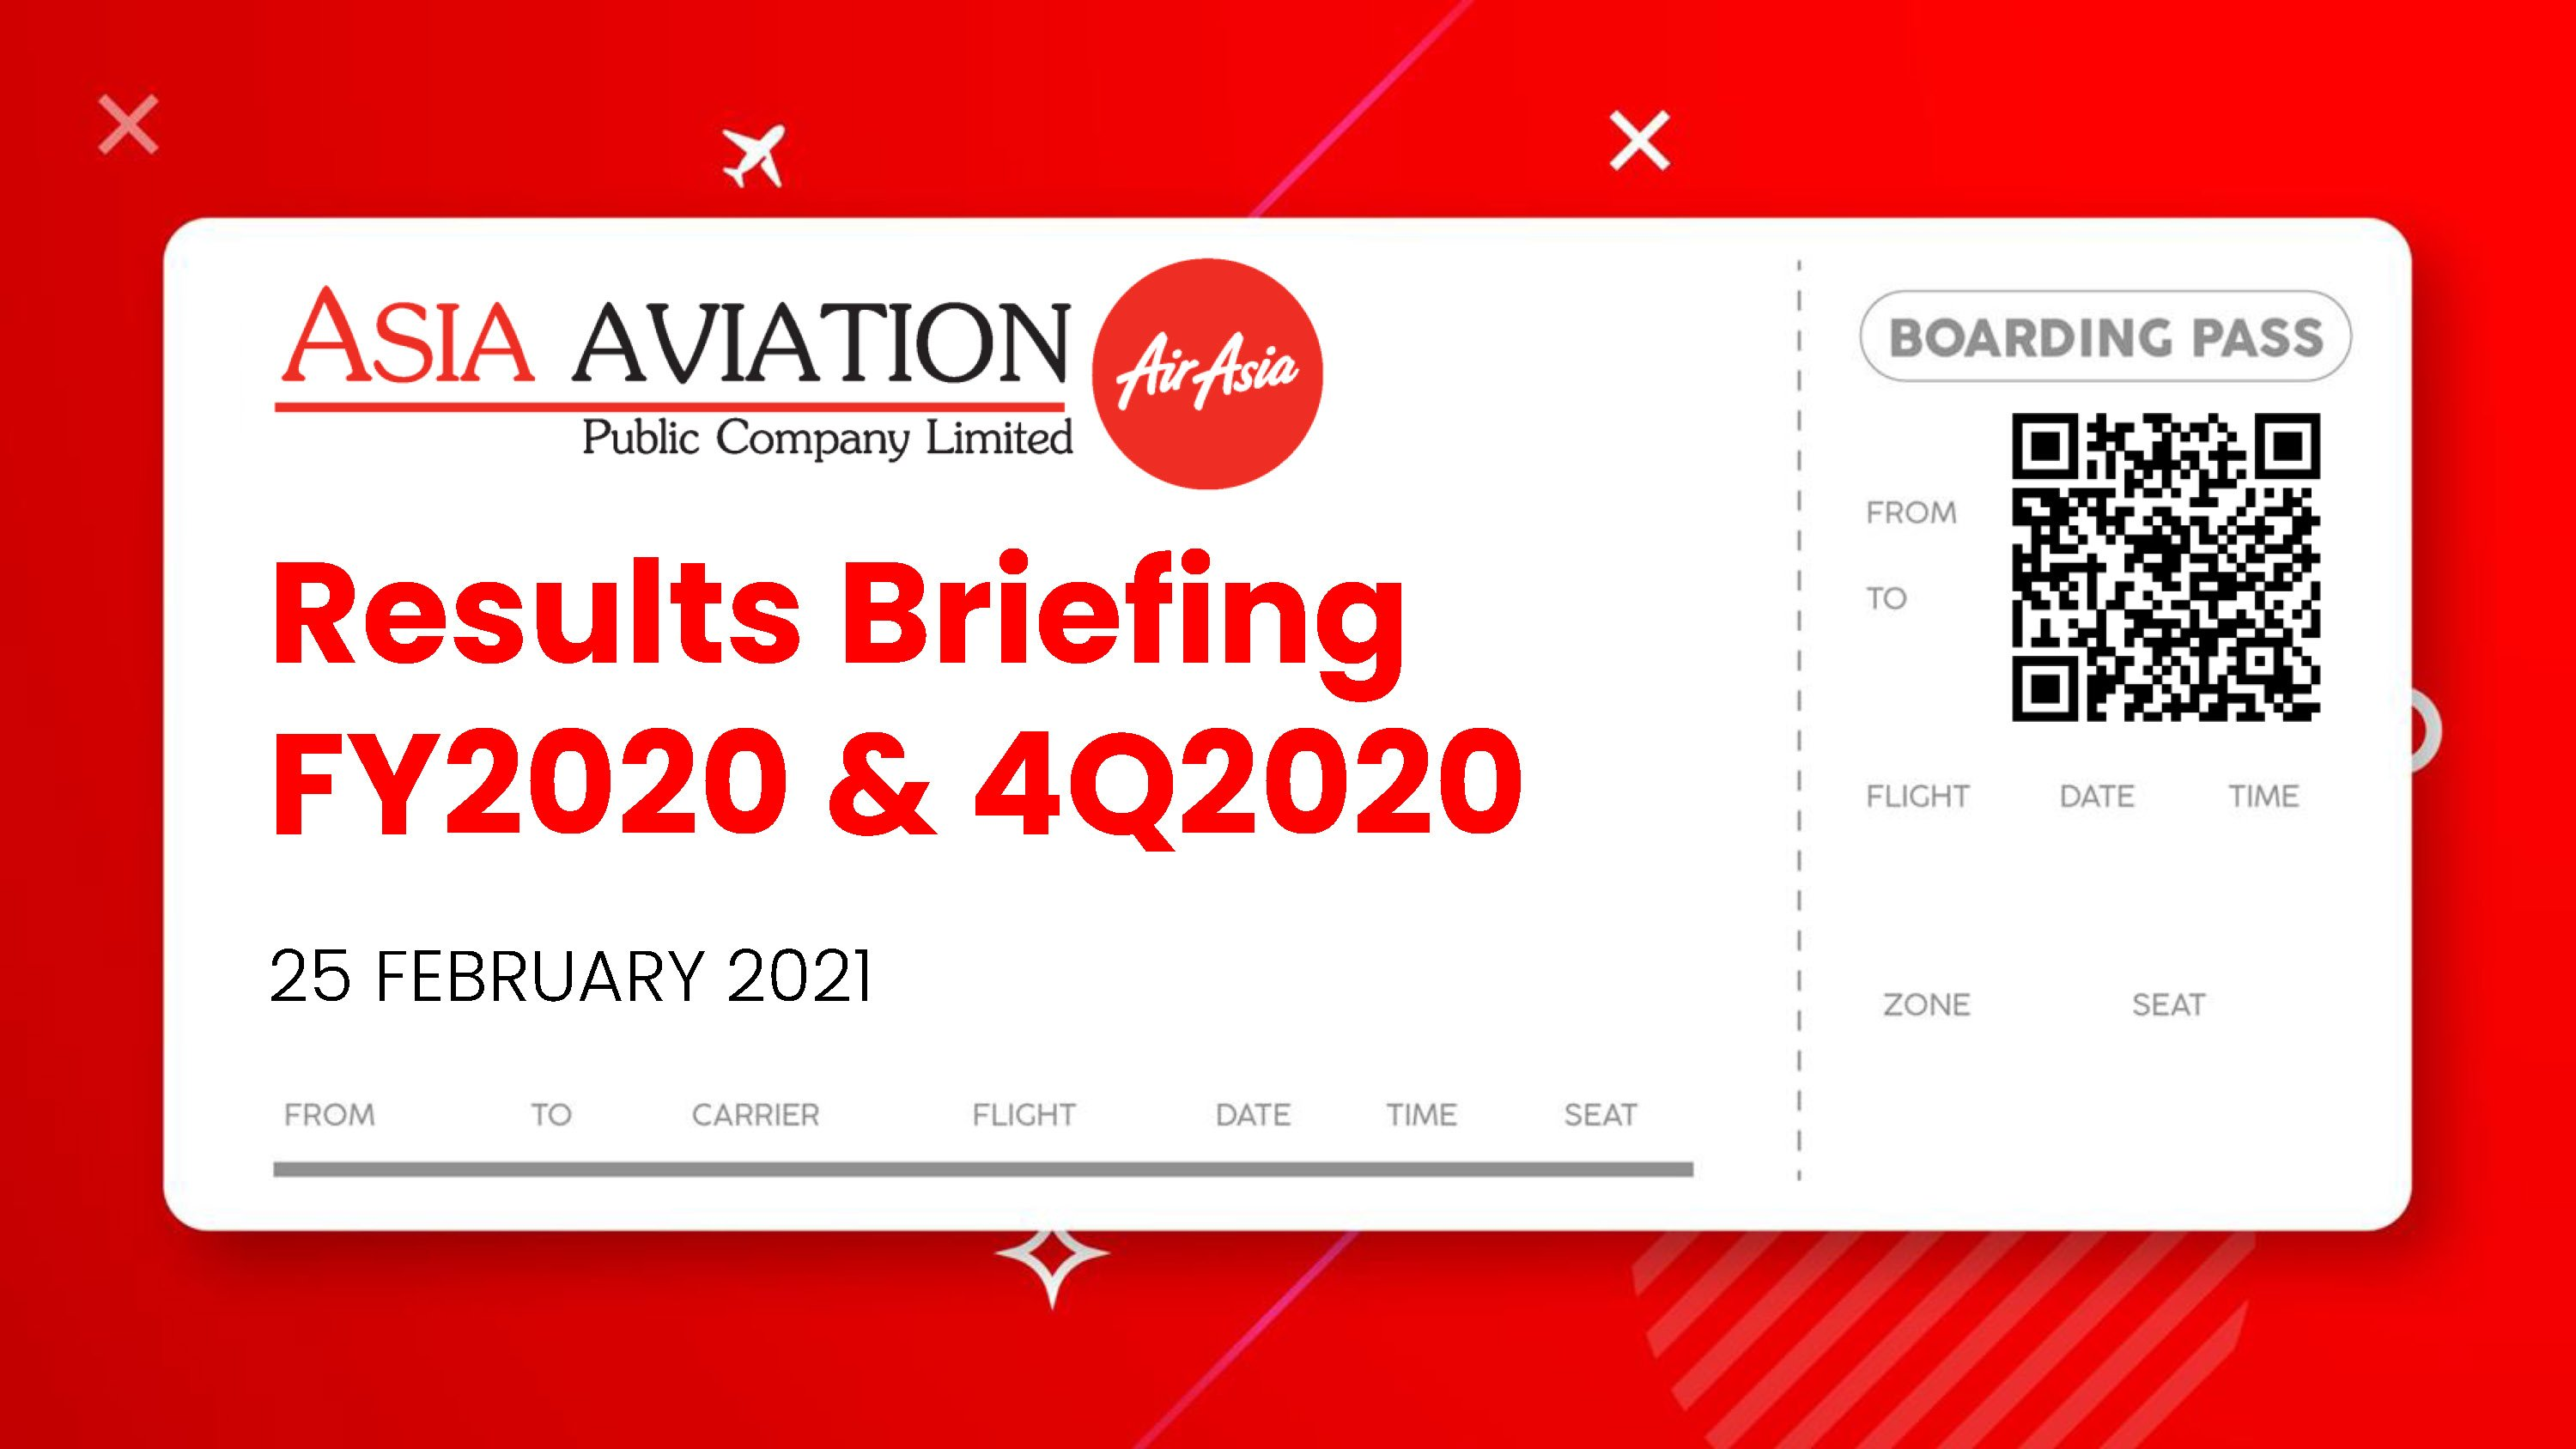 RESULTS BRIEFING FY2020